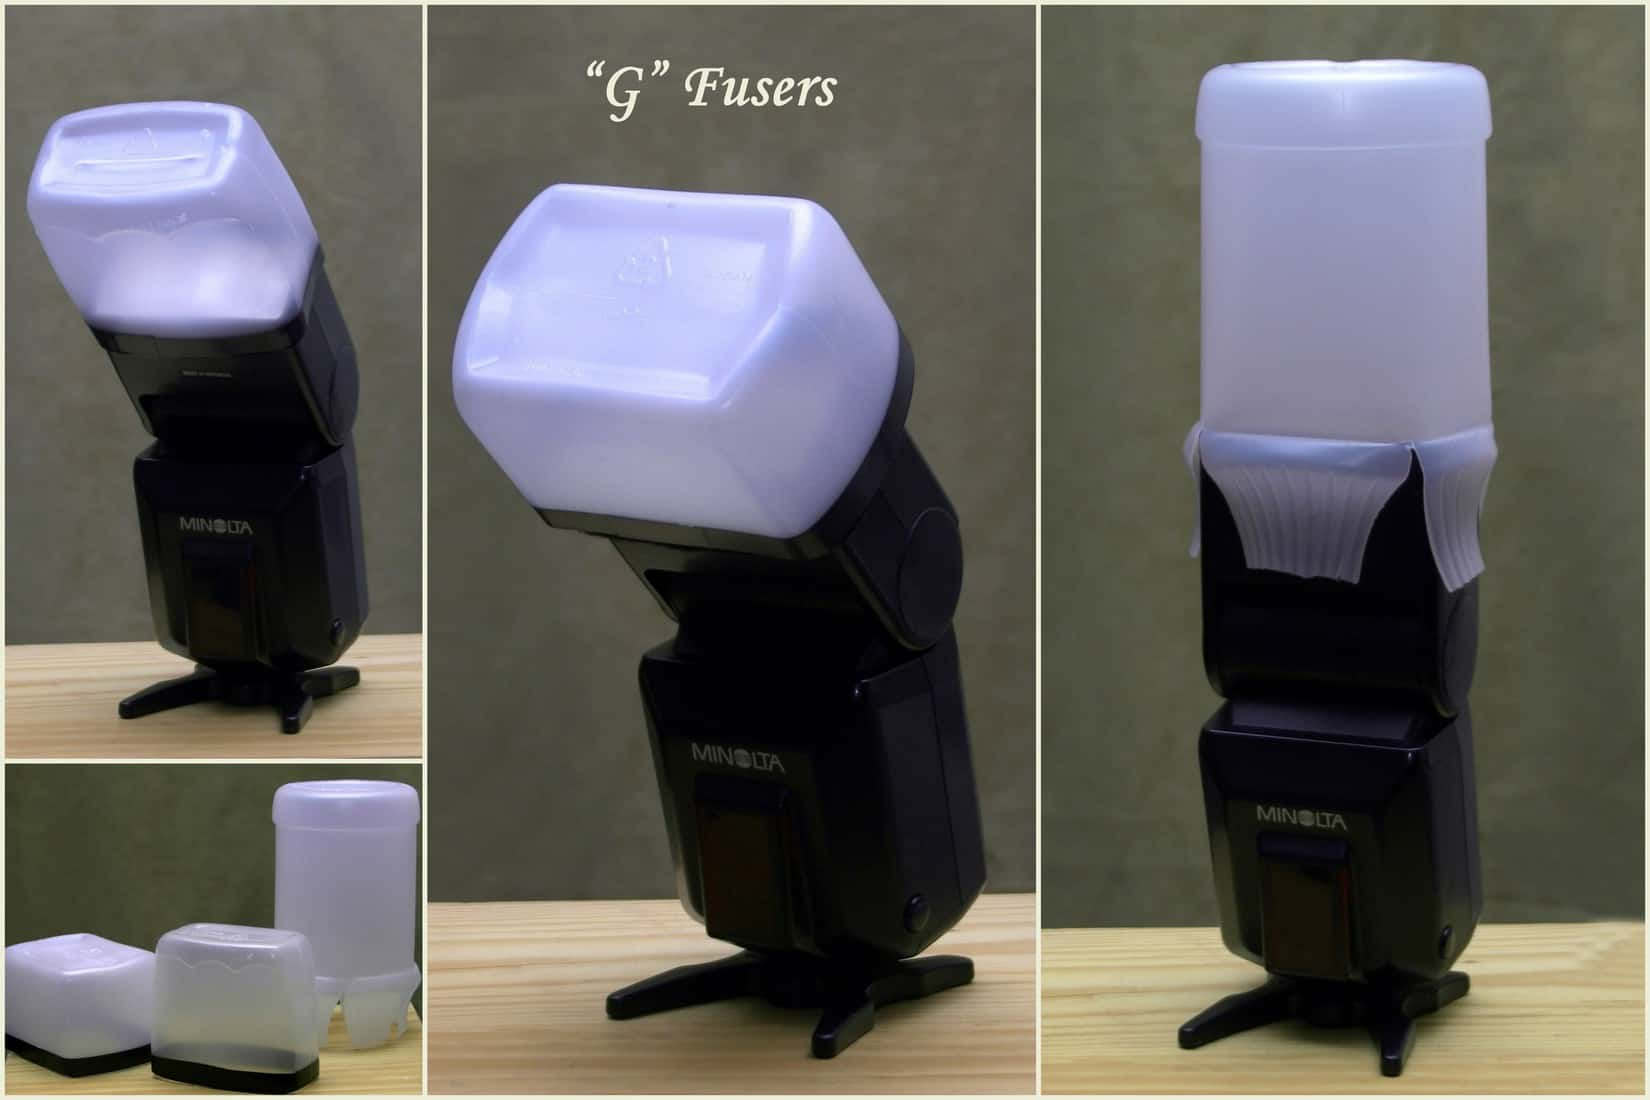 How to Make a Simple Flash Diffuser for FREE! – Improve